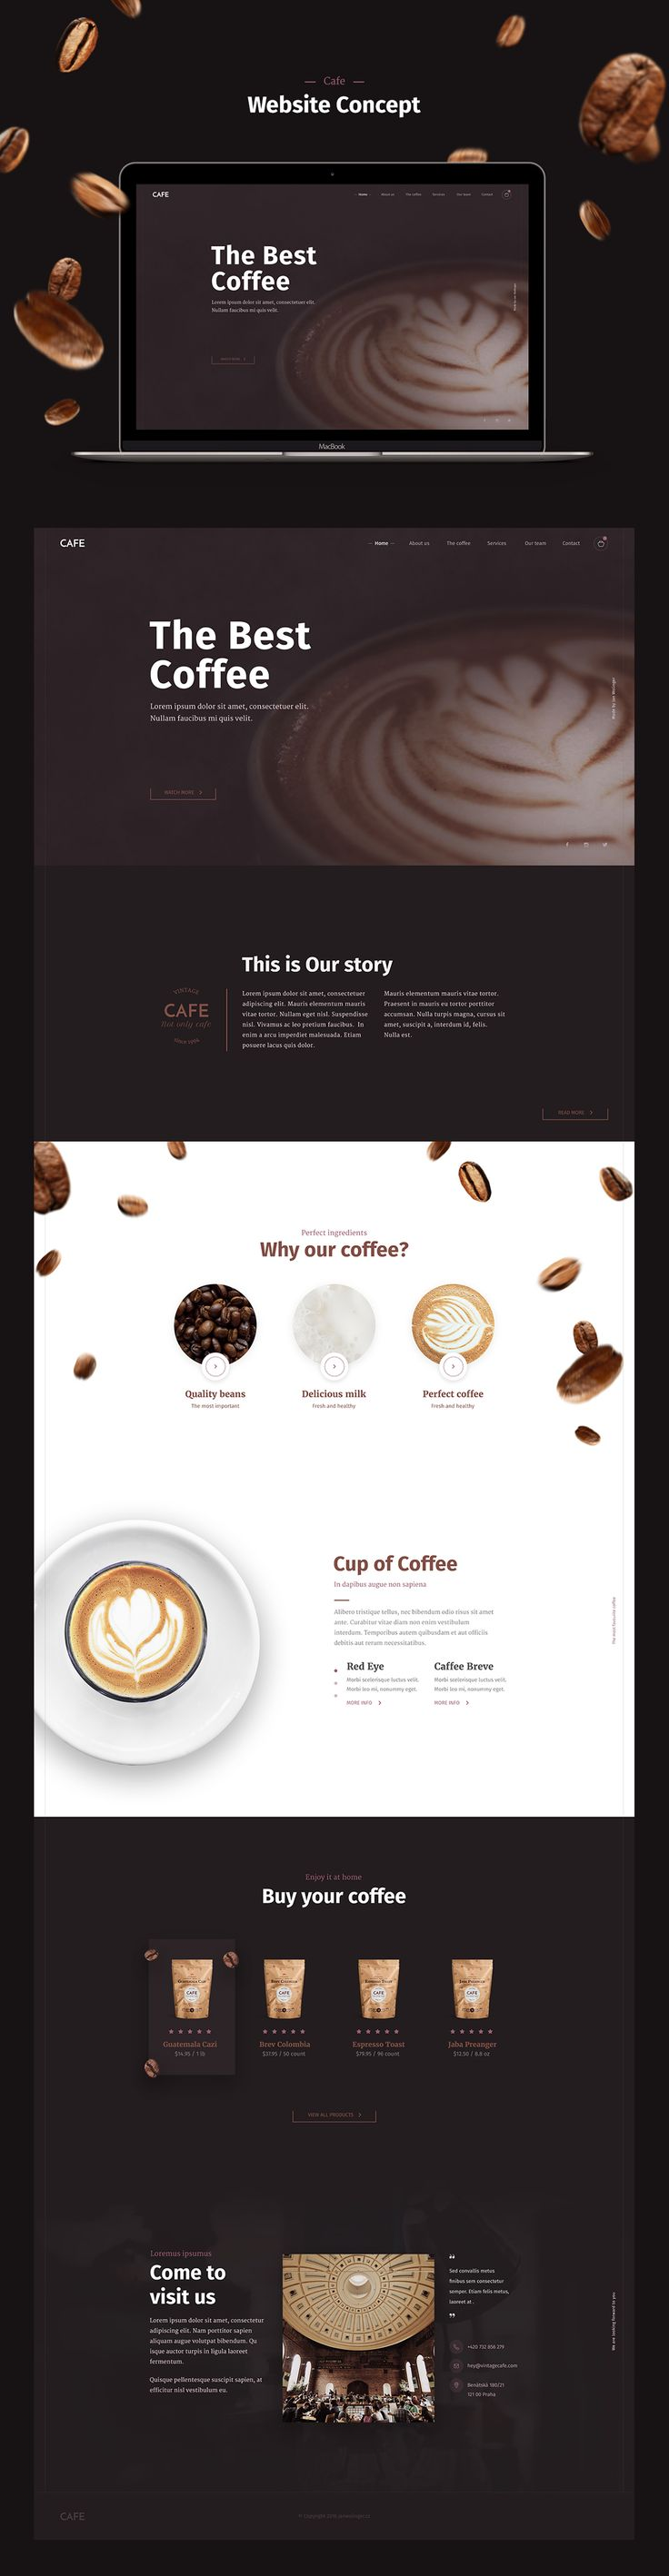 Cafe Website on Behance